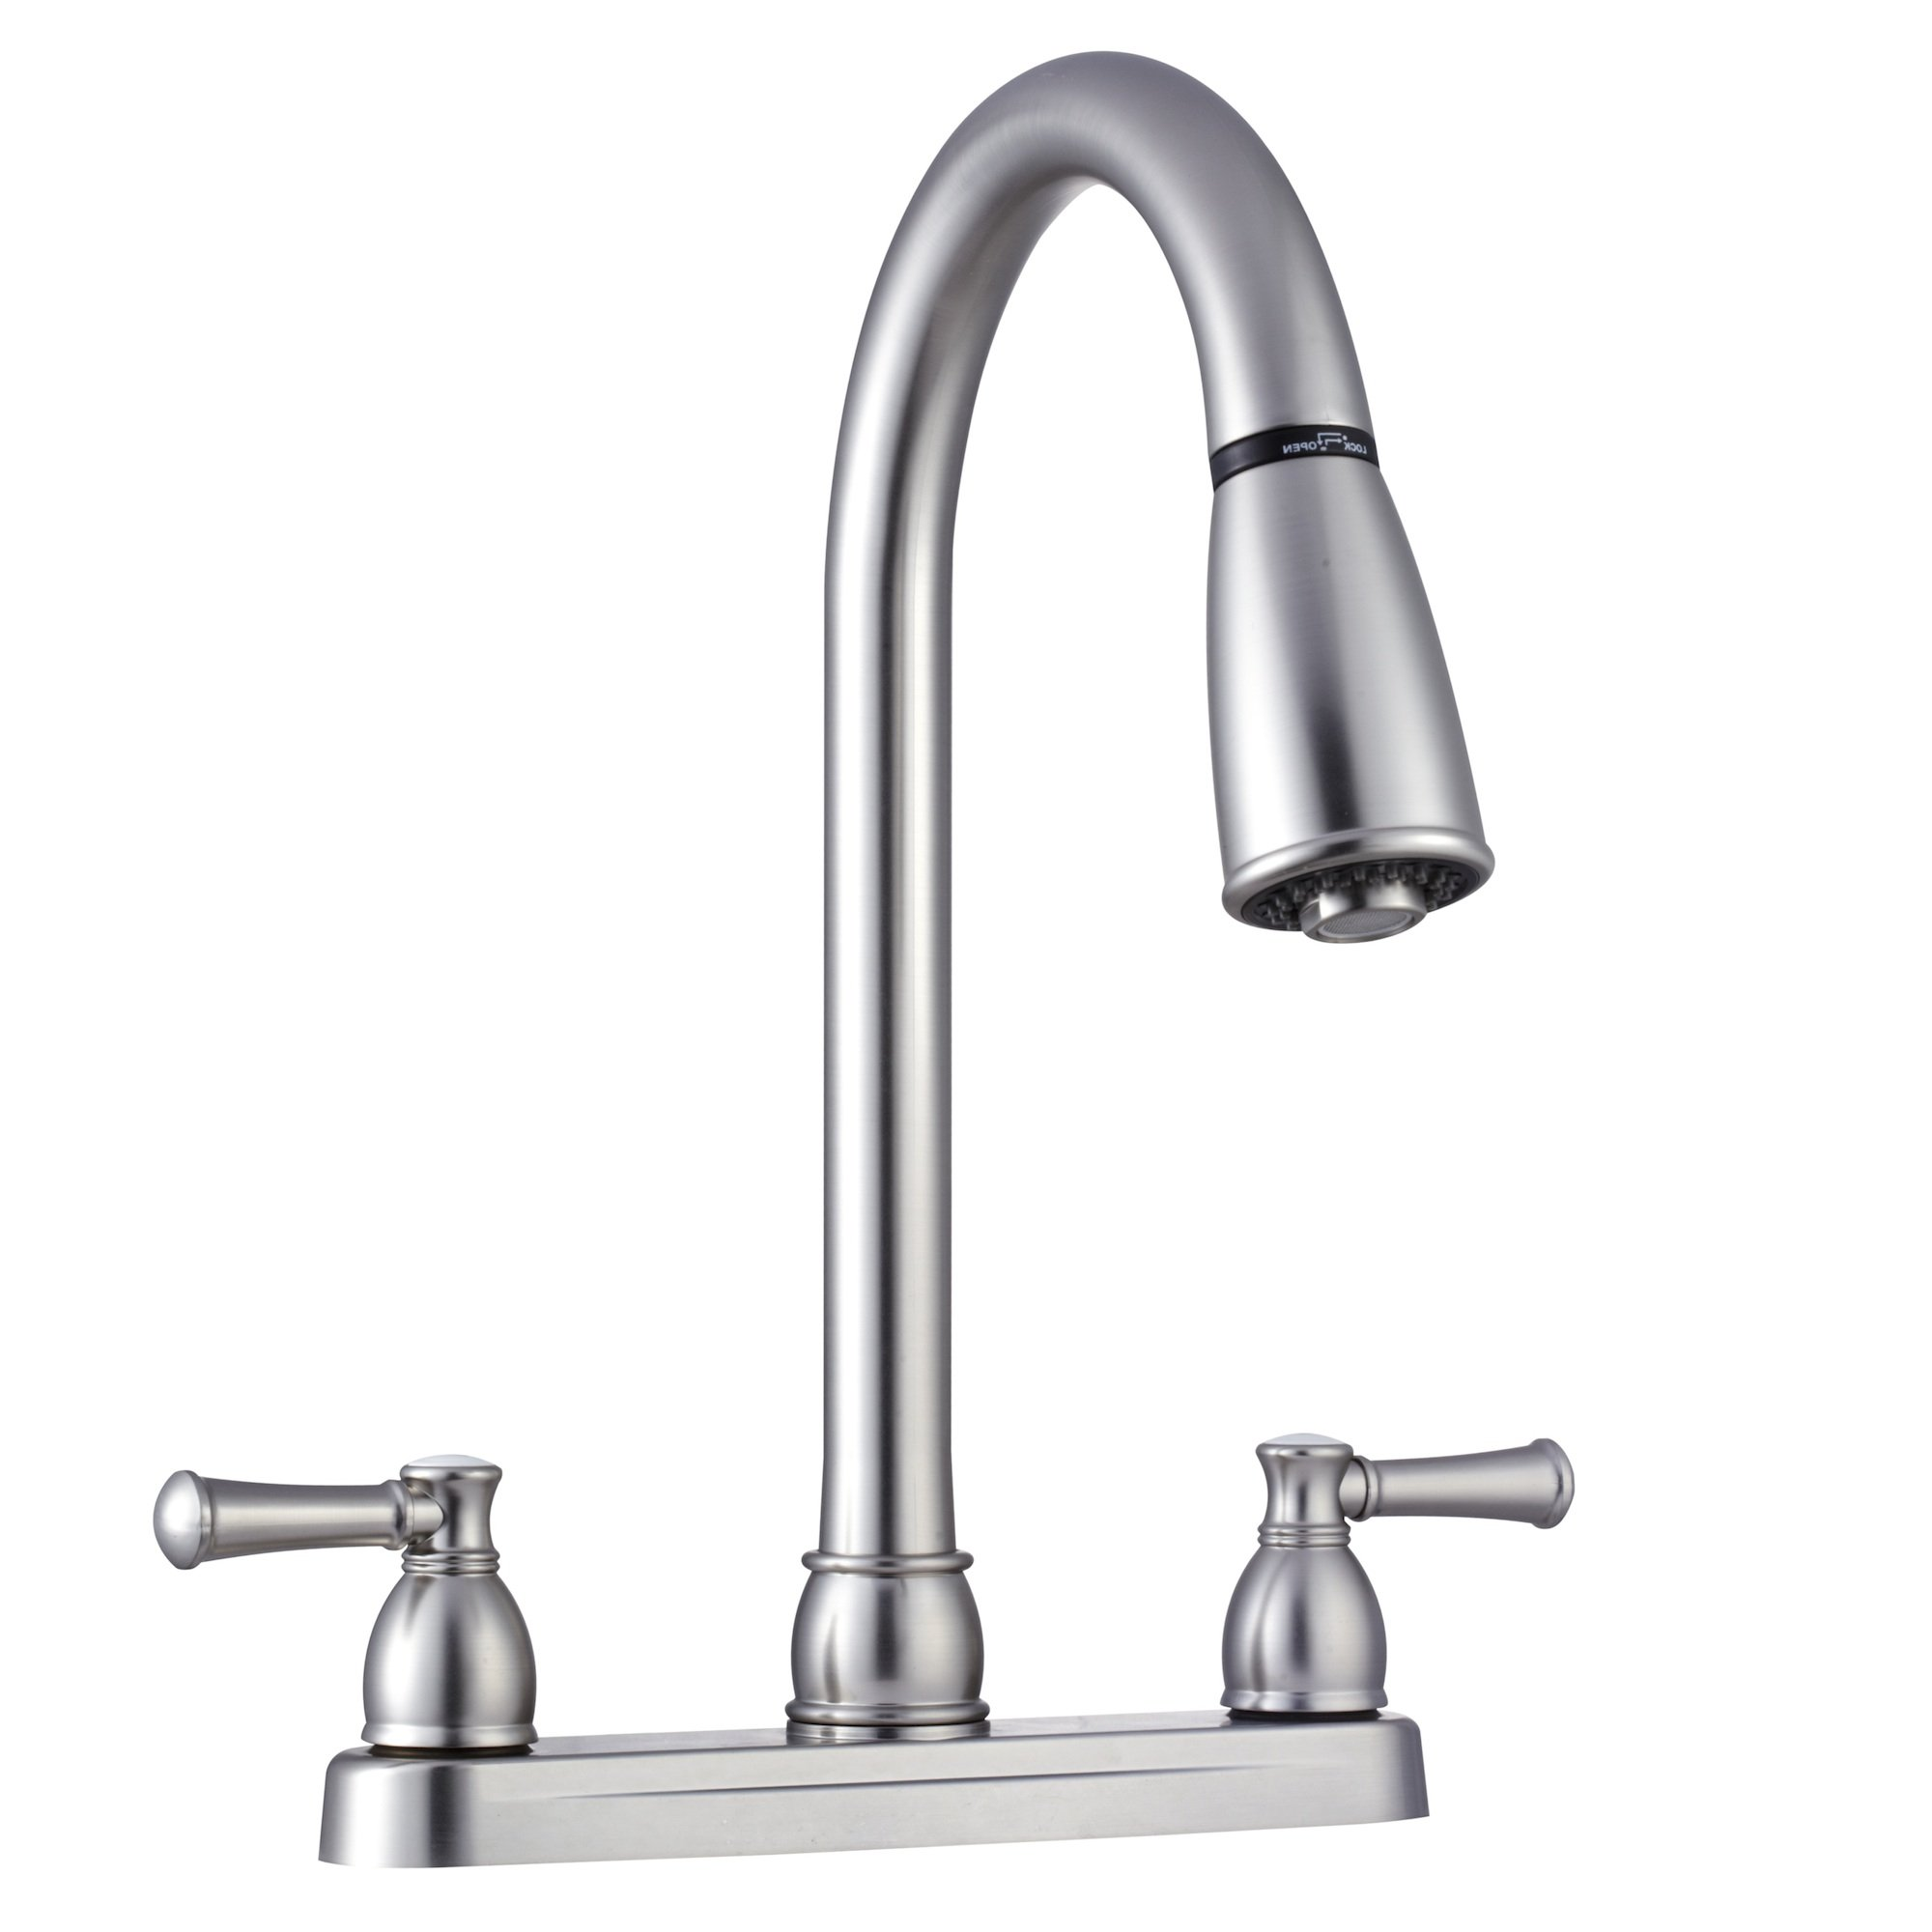 Dura Faucet RV Pull Down Kitchen Faucet for Recreational Vehicles, Motorhomes, 5th Wheels, Trailers - Hi-Rise Spout, Toggling Sprayer, Classical Levers & Easy Install (Brushed Satin Nickel)